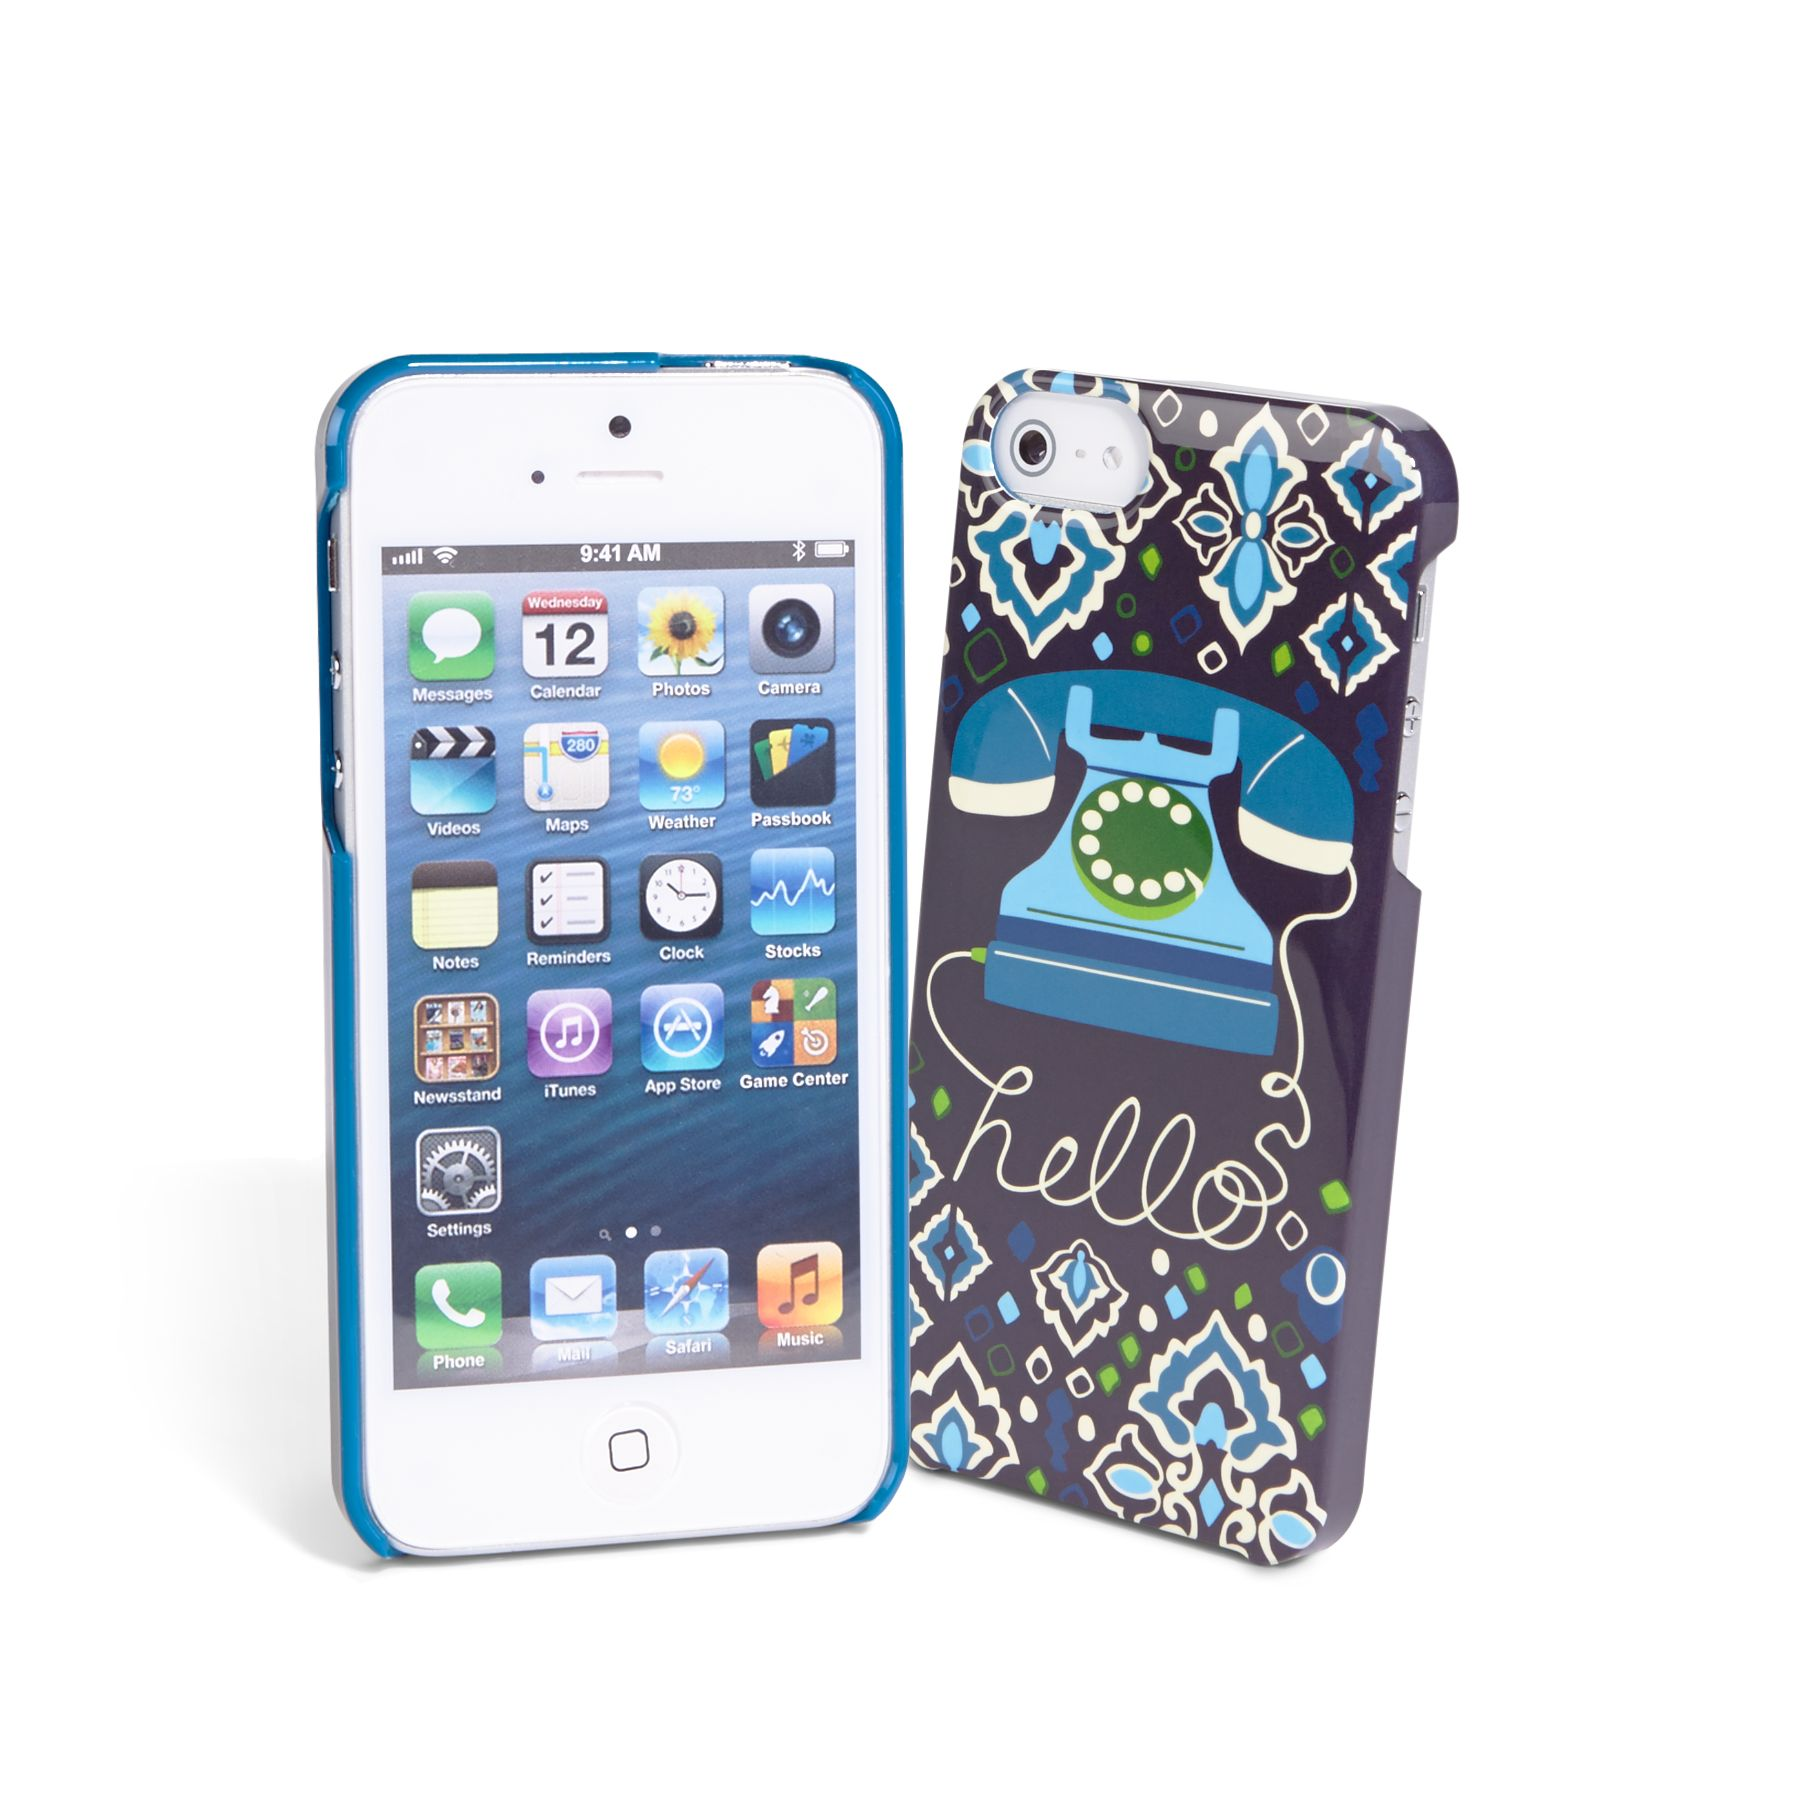 vera bradley iphone 5 case vera bradley whimsy snap on phone for iphone 5 5s ebay 18147